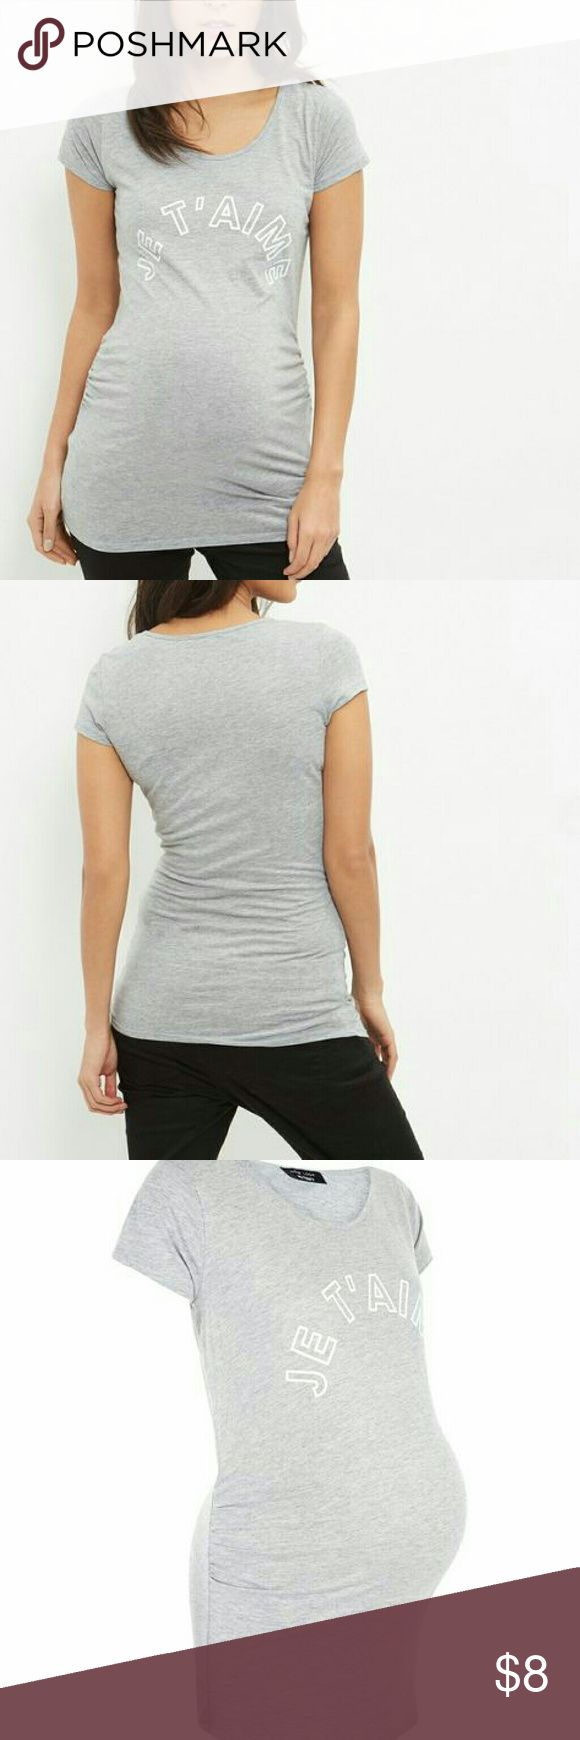 New Look maternity je t'aime printed tshirt Roomy and in good condition size uk 14 us 10. My favorite shirt while pregnant in my 3rd trimester. New Look Tops Tees - Short Sleeve